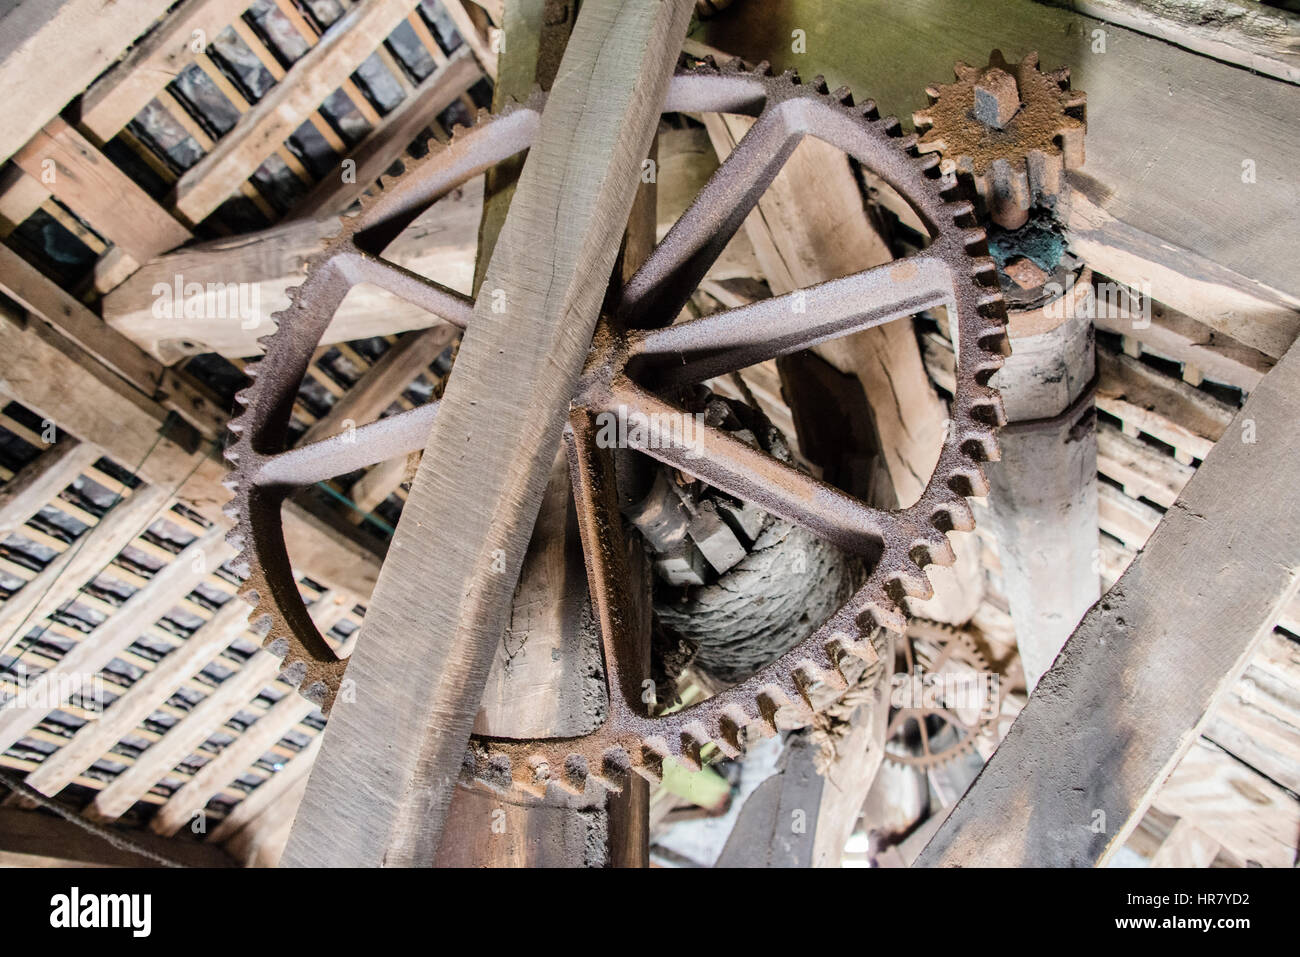 Cogs and inner workings of the Cheddleton Flint Mill, Staffordshire - Stock Image